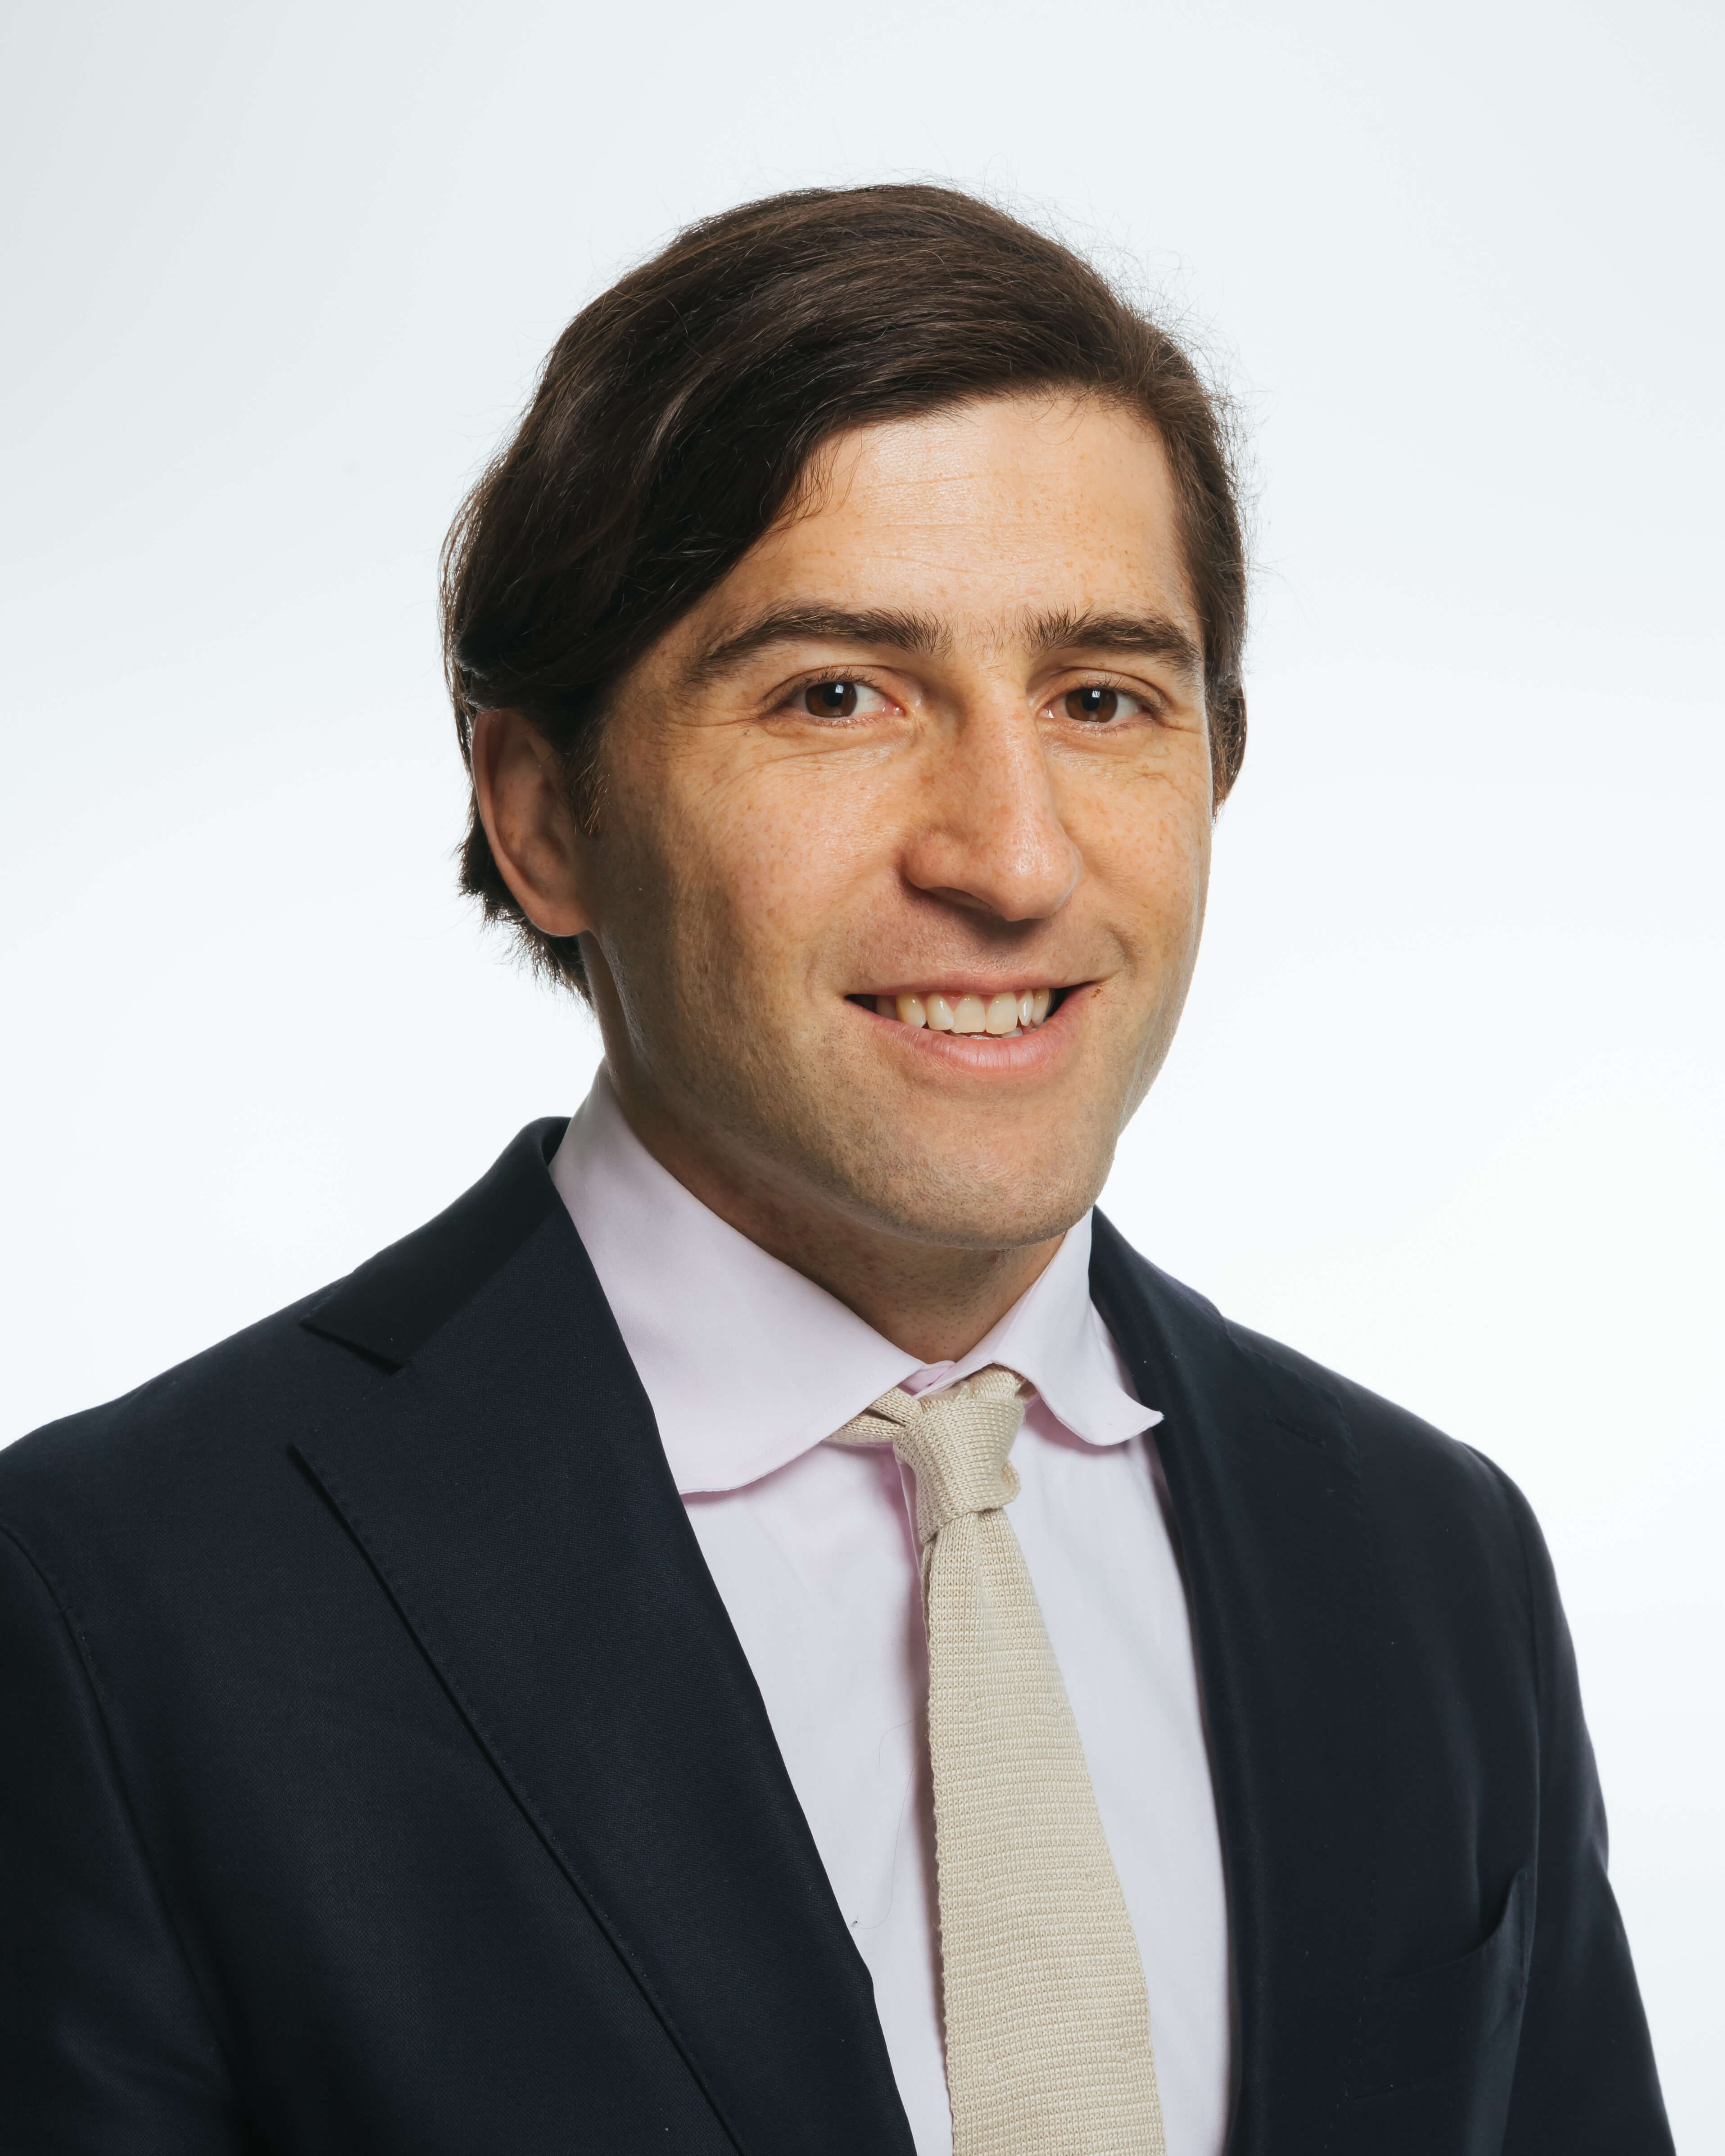 Carlos Blanco is an MBA candidate at Oxford Said, says alumni networks are important to students in 2020